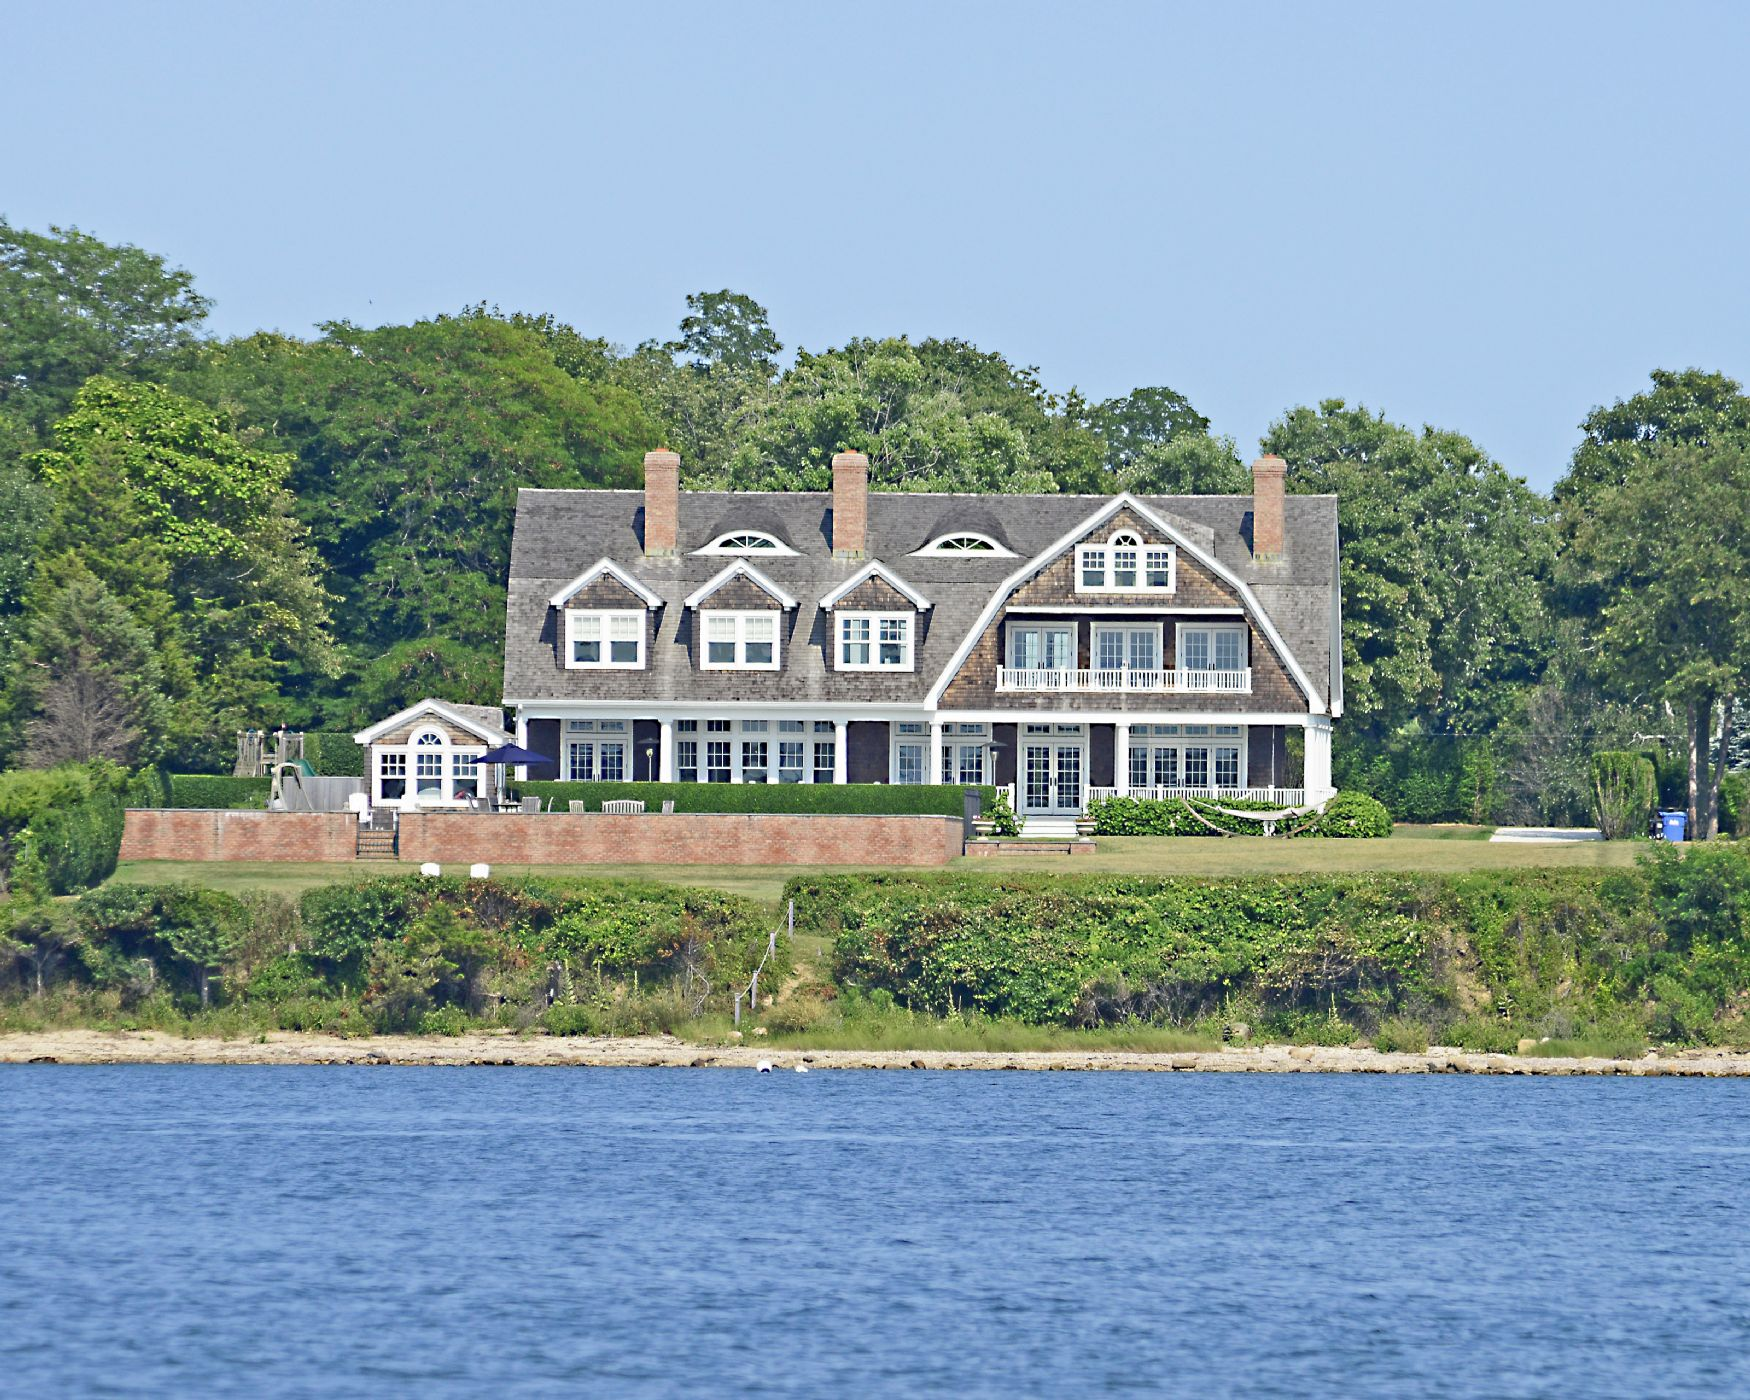 shelter island heights divorced singles personals What to do on shelter island this summer | june 12,  be sure to explore the shelter island heights,  dating back to 1652.